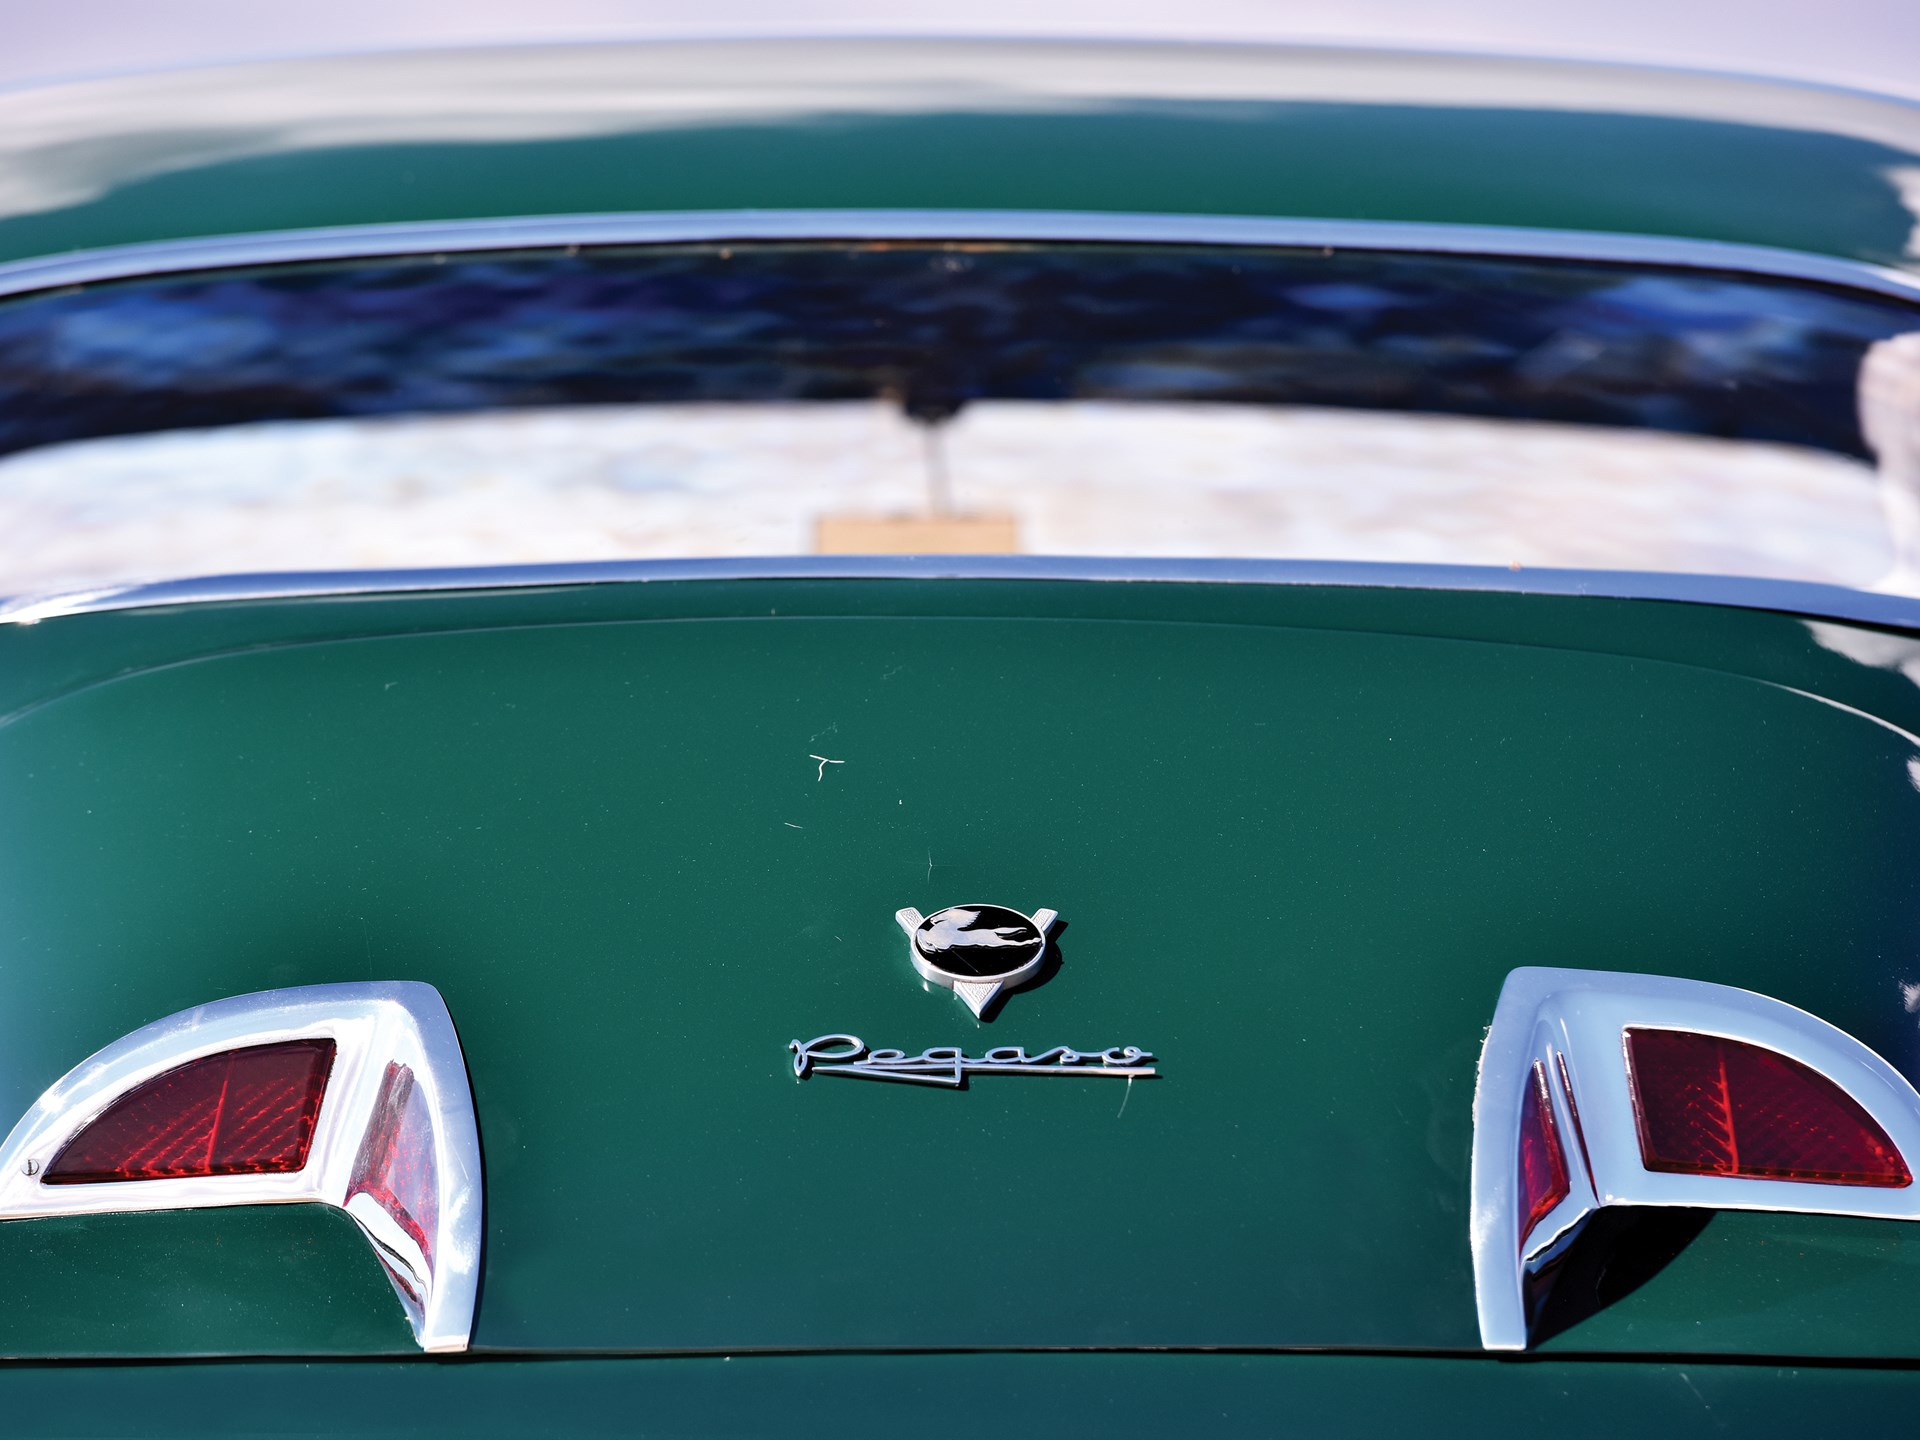 RM Sotheby's - 1954 Pegaso Z-102 3 2 Berlinetta by Touring